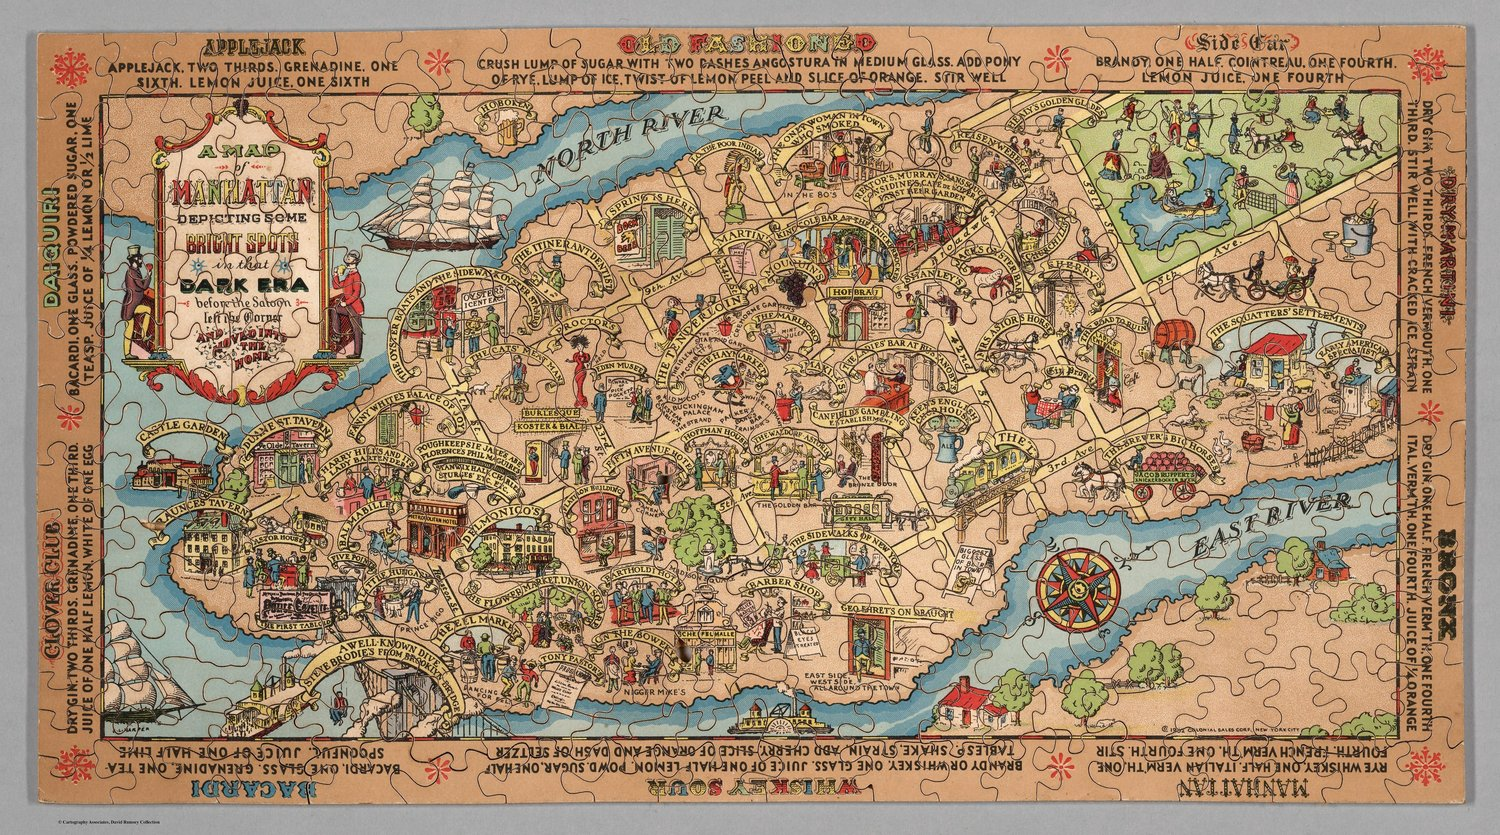 Puzzle map of Manhattan from 1932